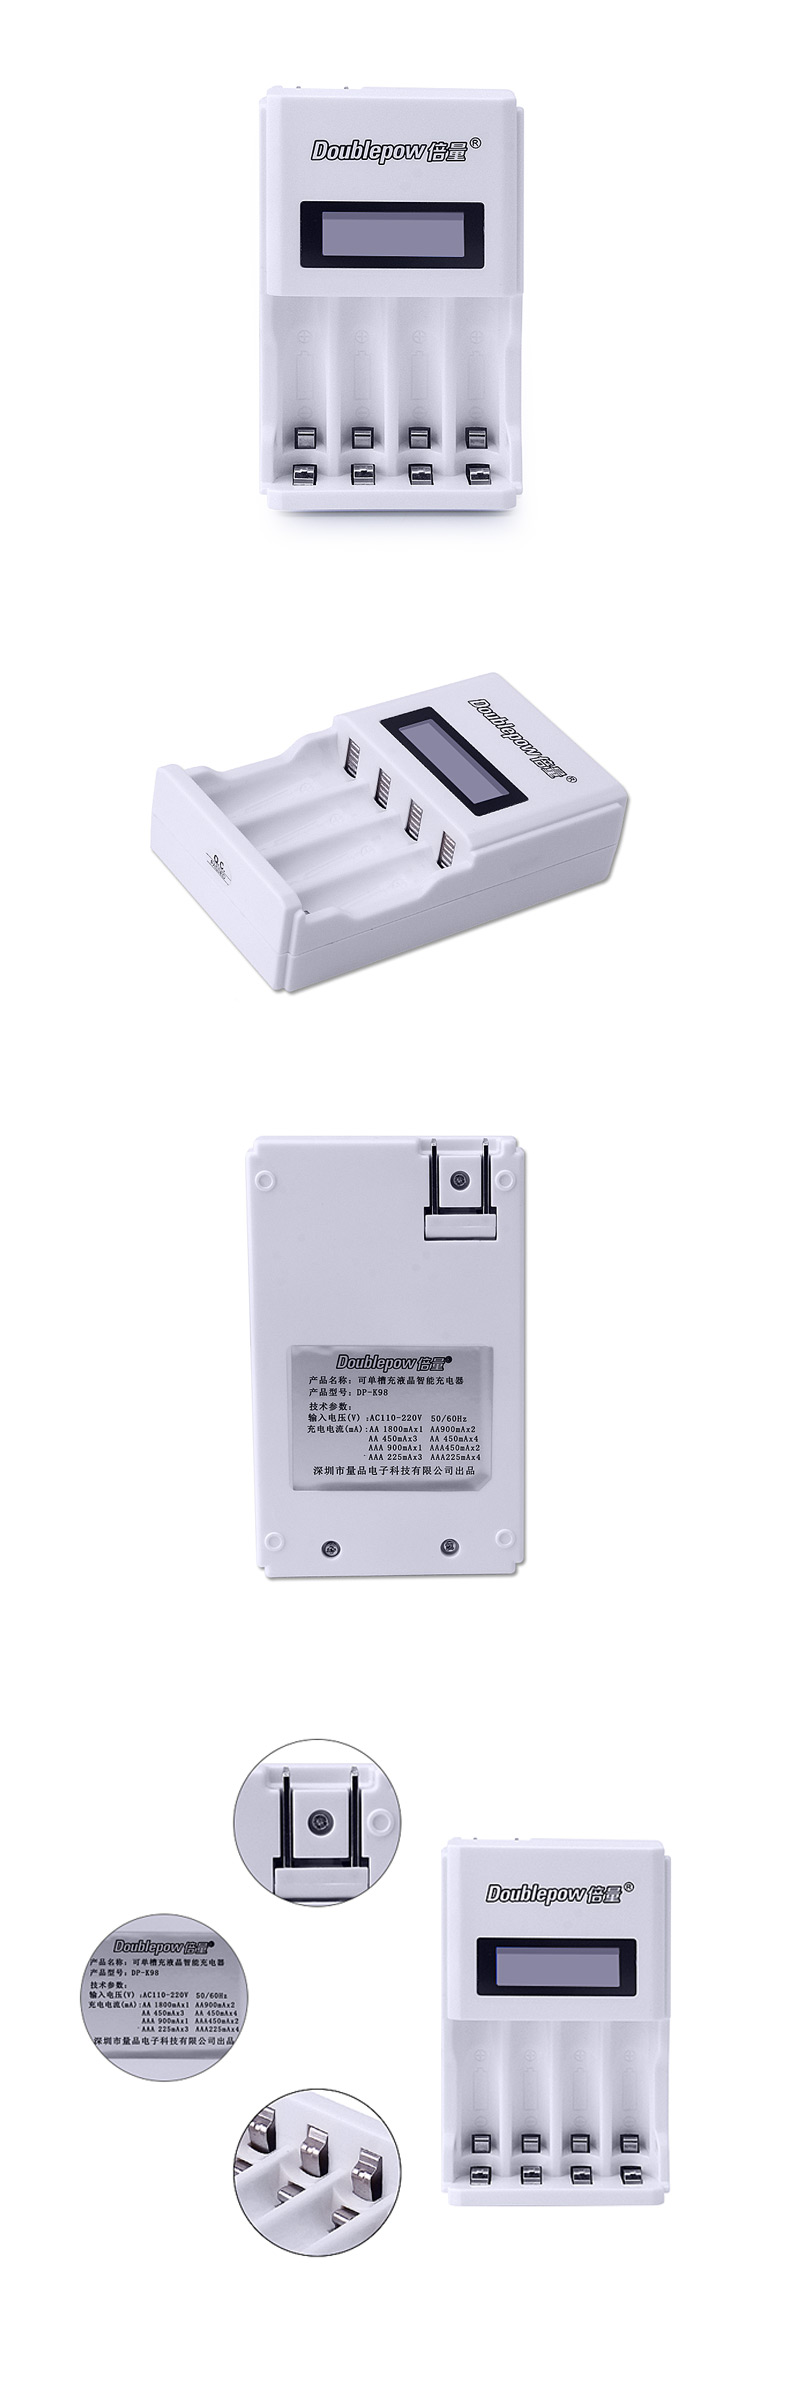 Shenzhen LCD Intelligent Smart Rapid Portable Charger for 1.2V AA/AAA Ni-MH/Ni-CD Rechargeable Battery